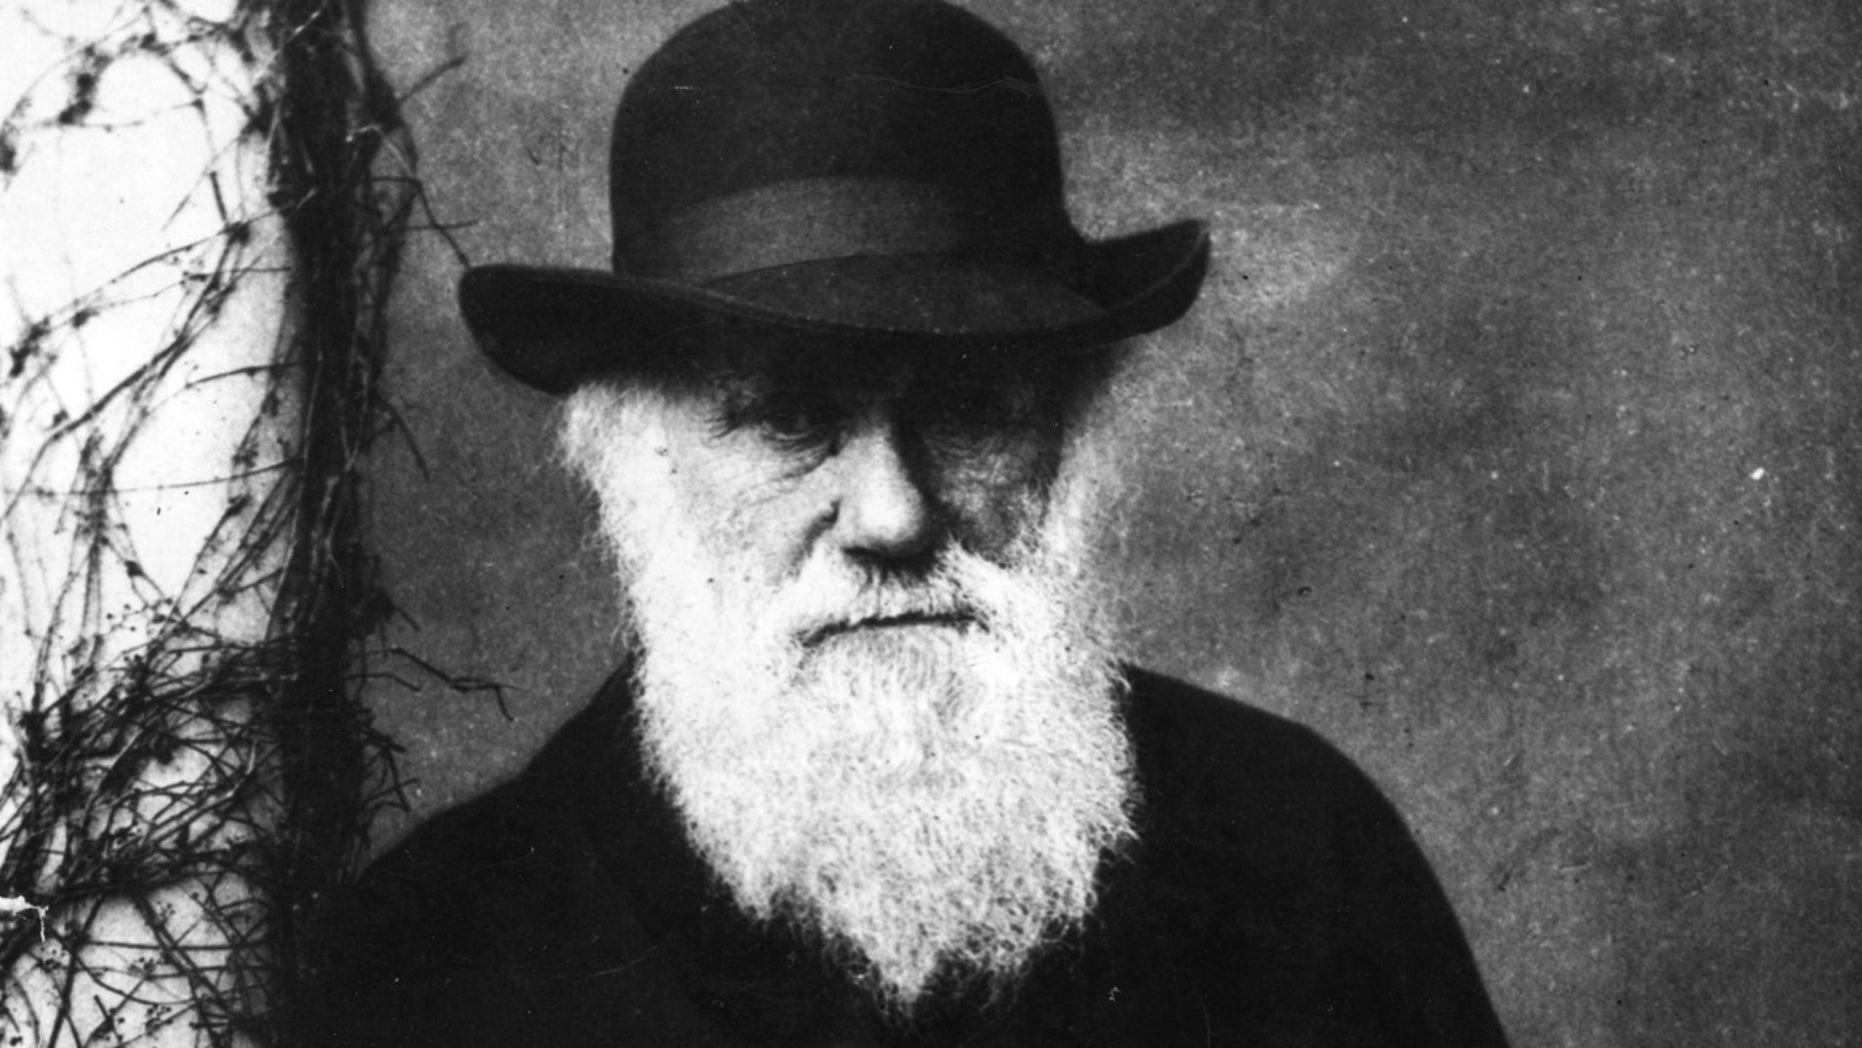 A British school scrapped the performance of a musical about scientist Charles Darwin following complaints from parents over the play's lyrics.